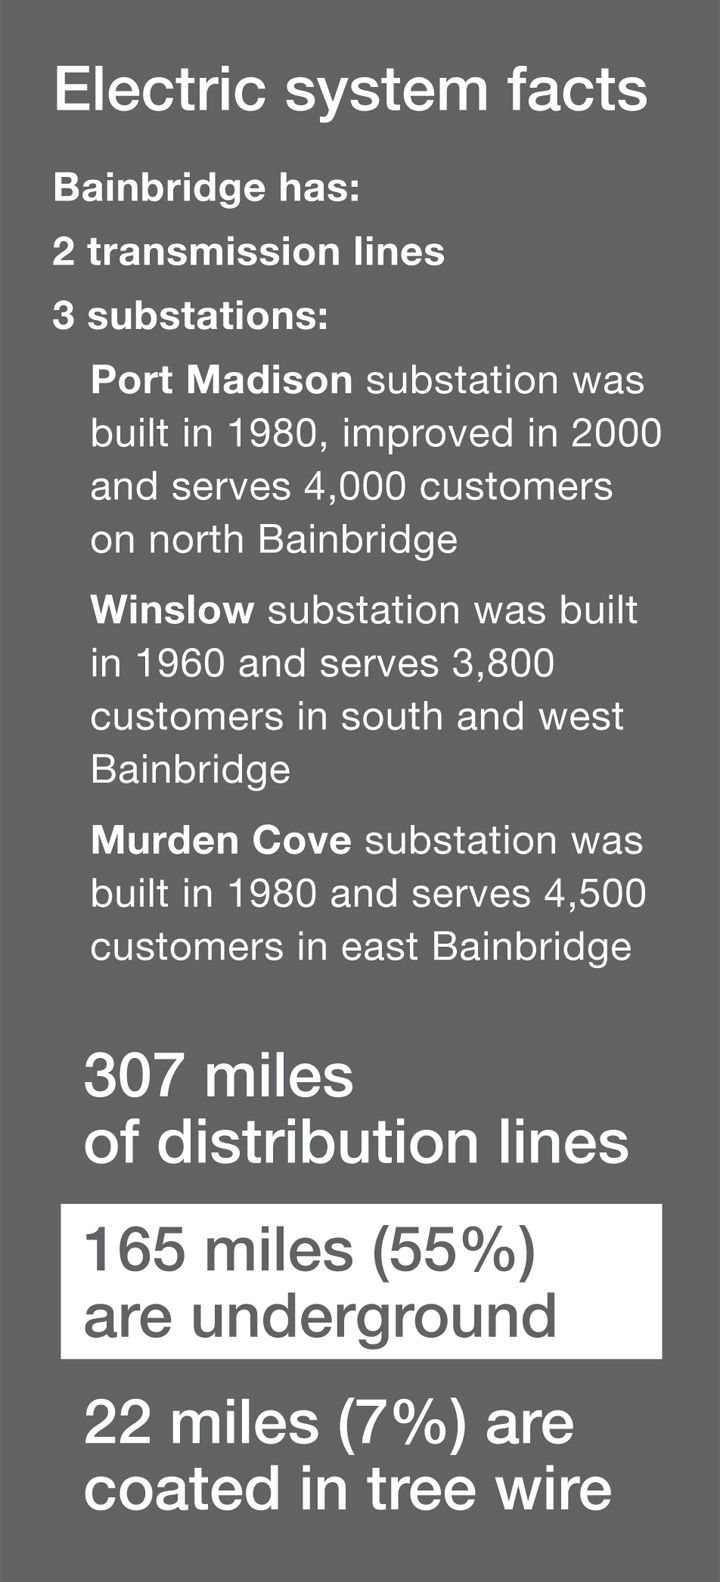 Bainbridge electric system facts